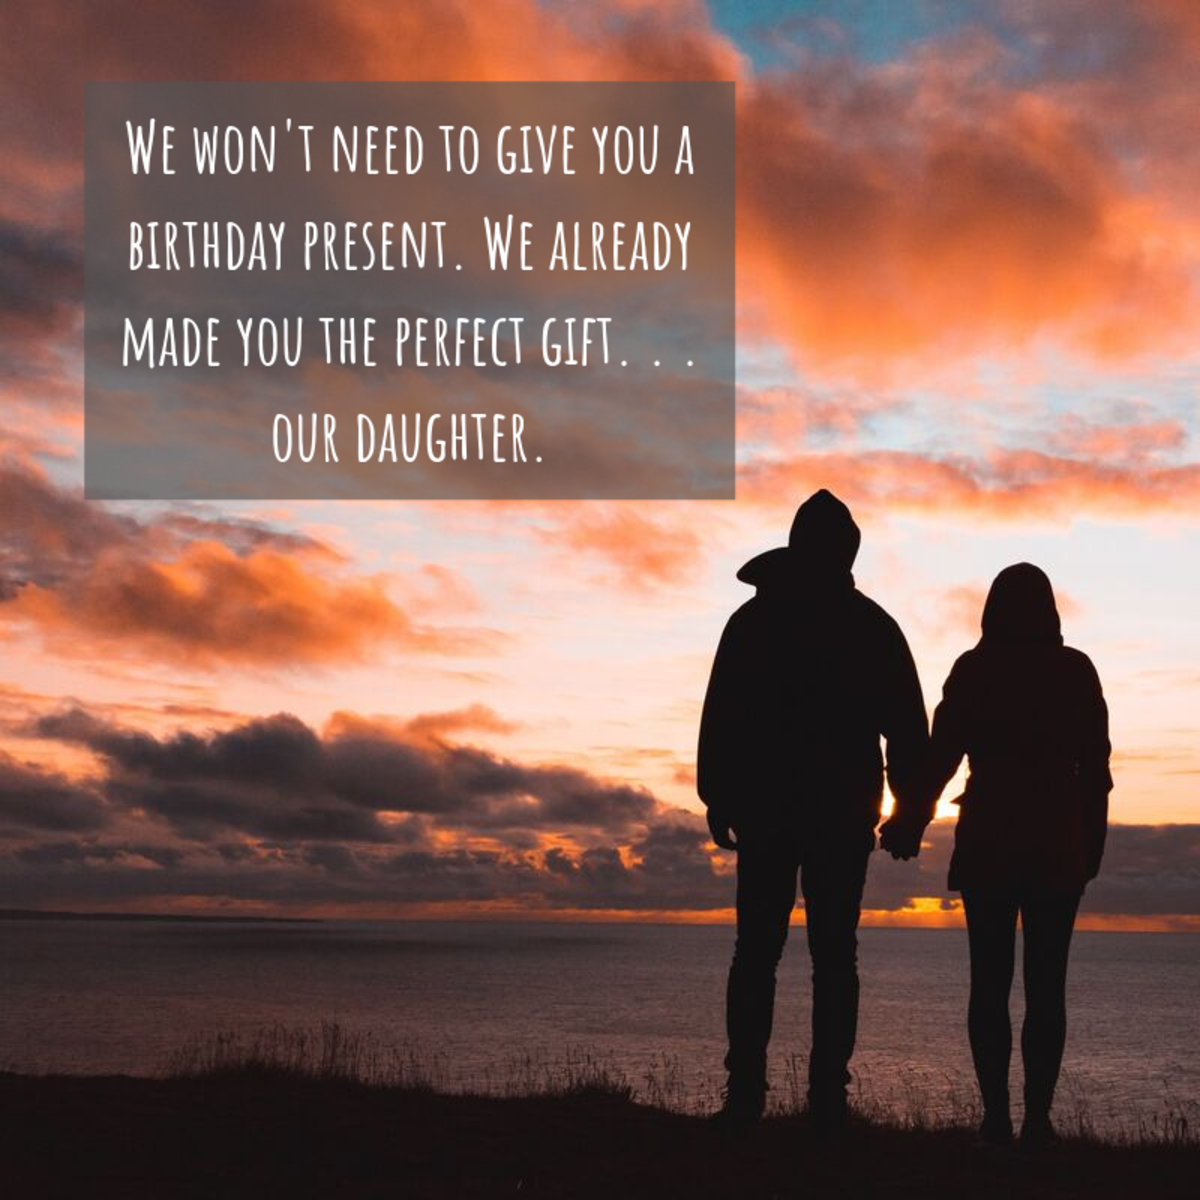 If you and your son-in-law are close and like to joke around together, consider writing him a humorous birthday message.